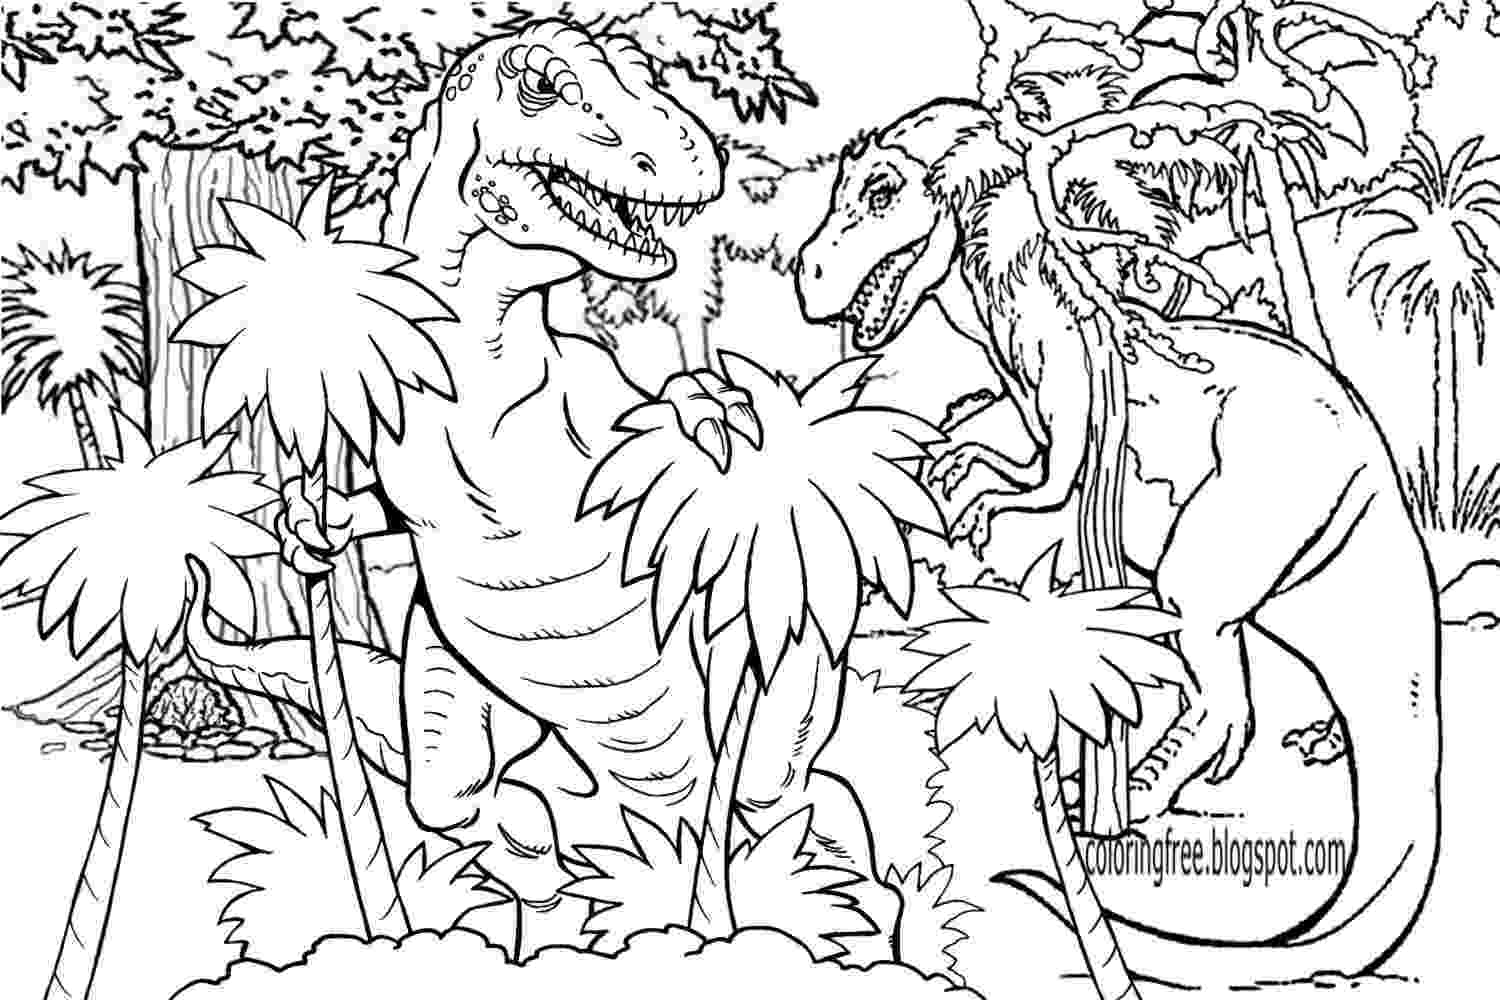 dinosaur colouring page the good dinosaur coloring pages disneyclipscom dinosaur page colouring